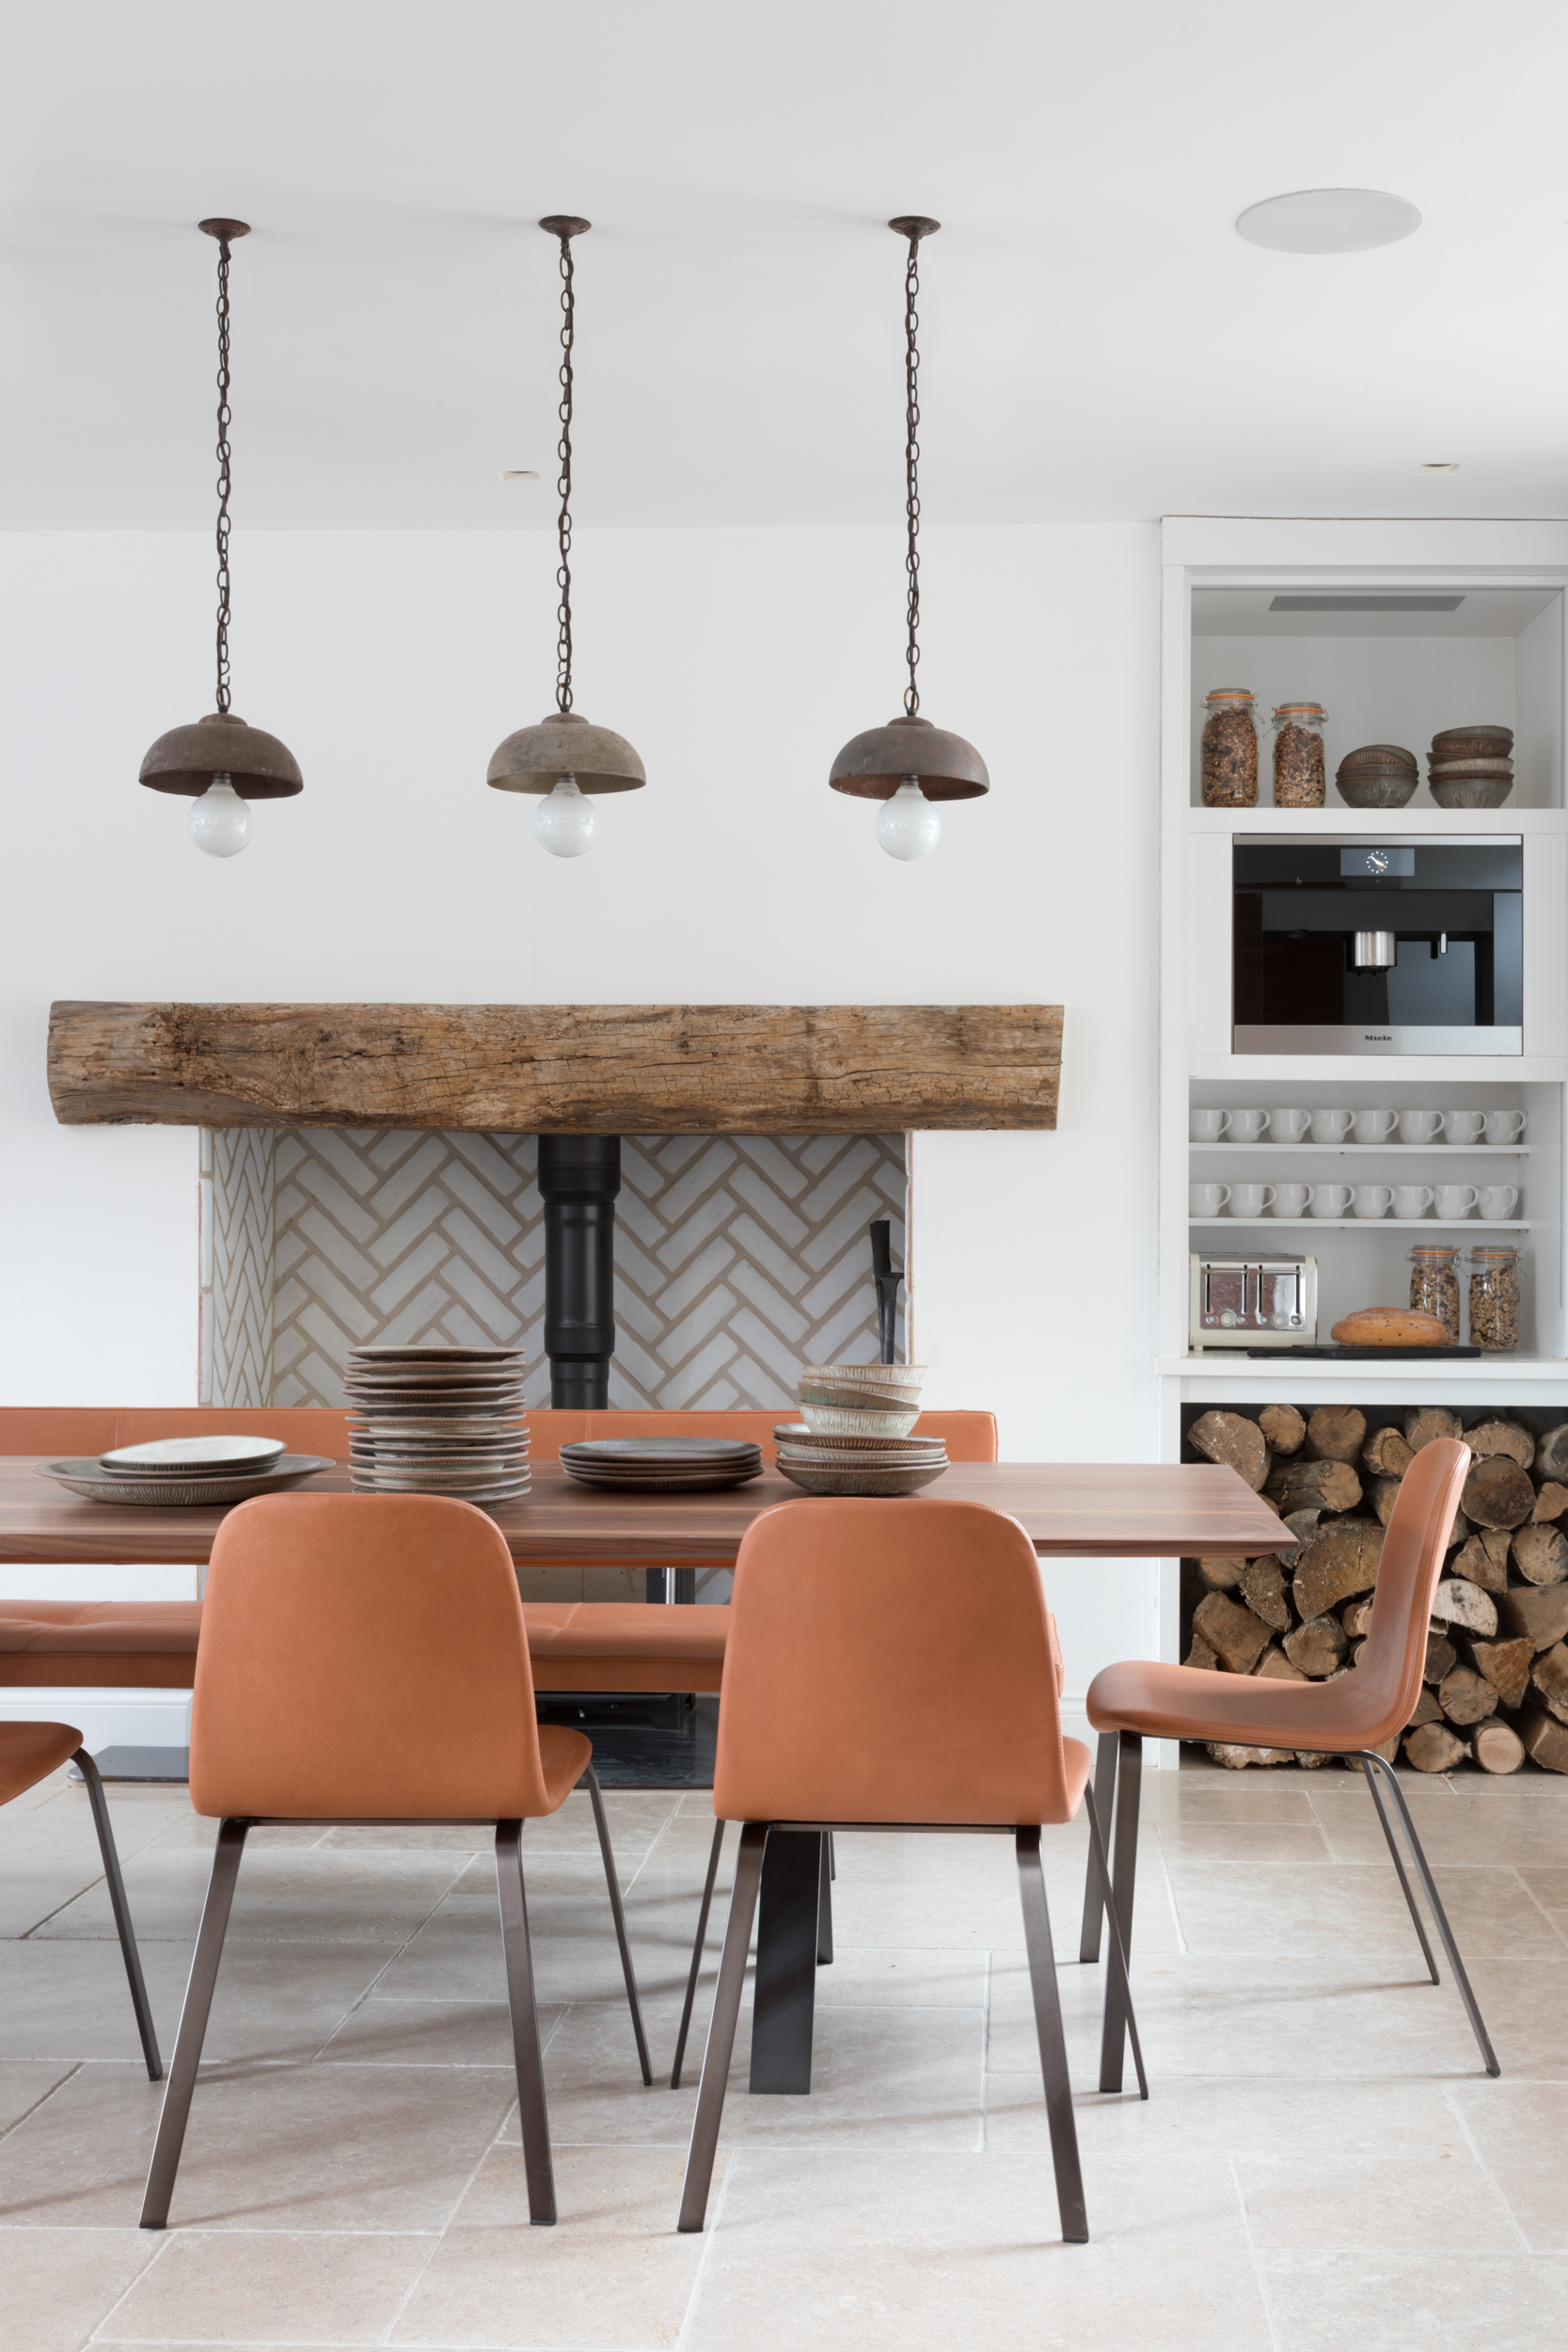 Paul Craig, Interior Photographer, Residential Photography, London, Dining Room, Kitchen